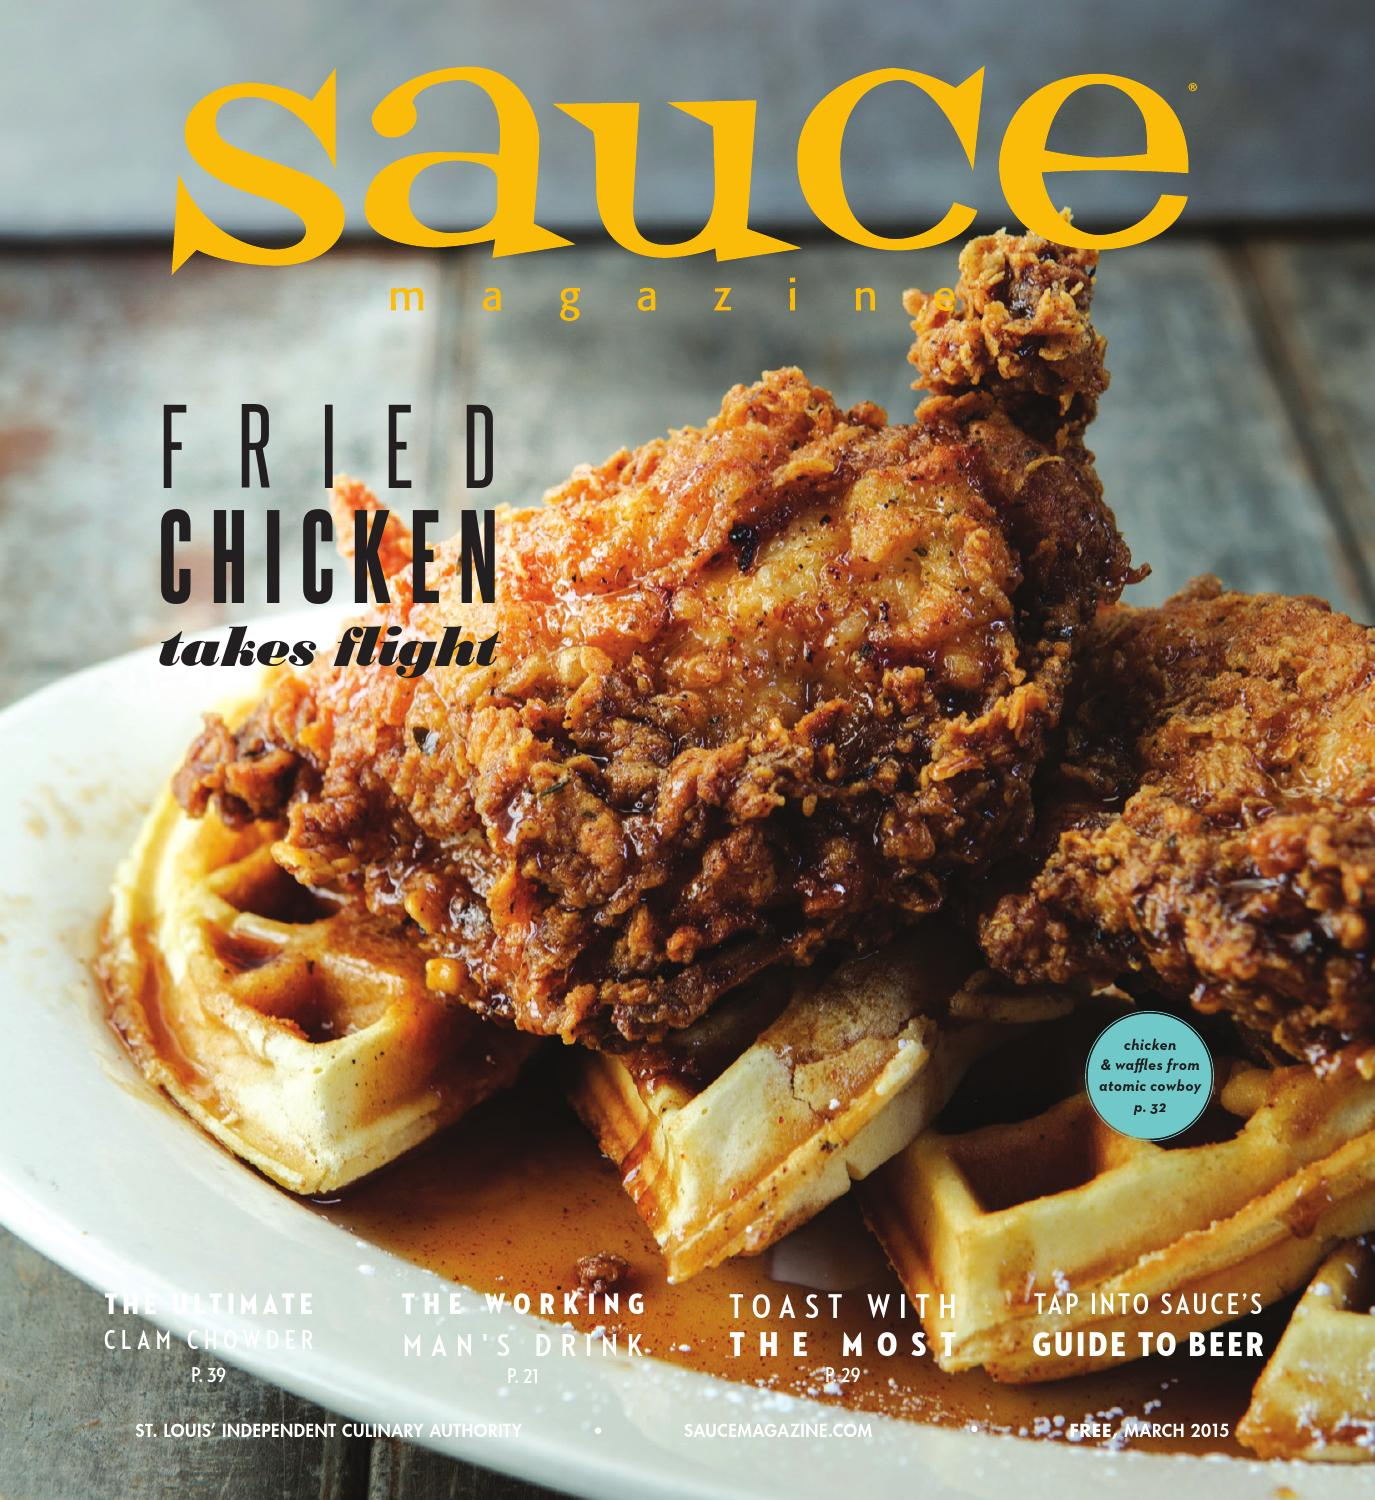 Cuisine Royale Brightness Too High March 2015 By Sauce Magazine Issuu